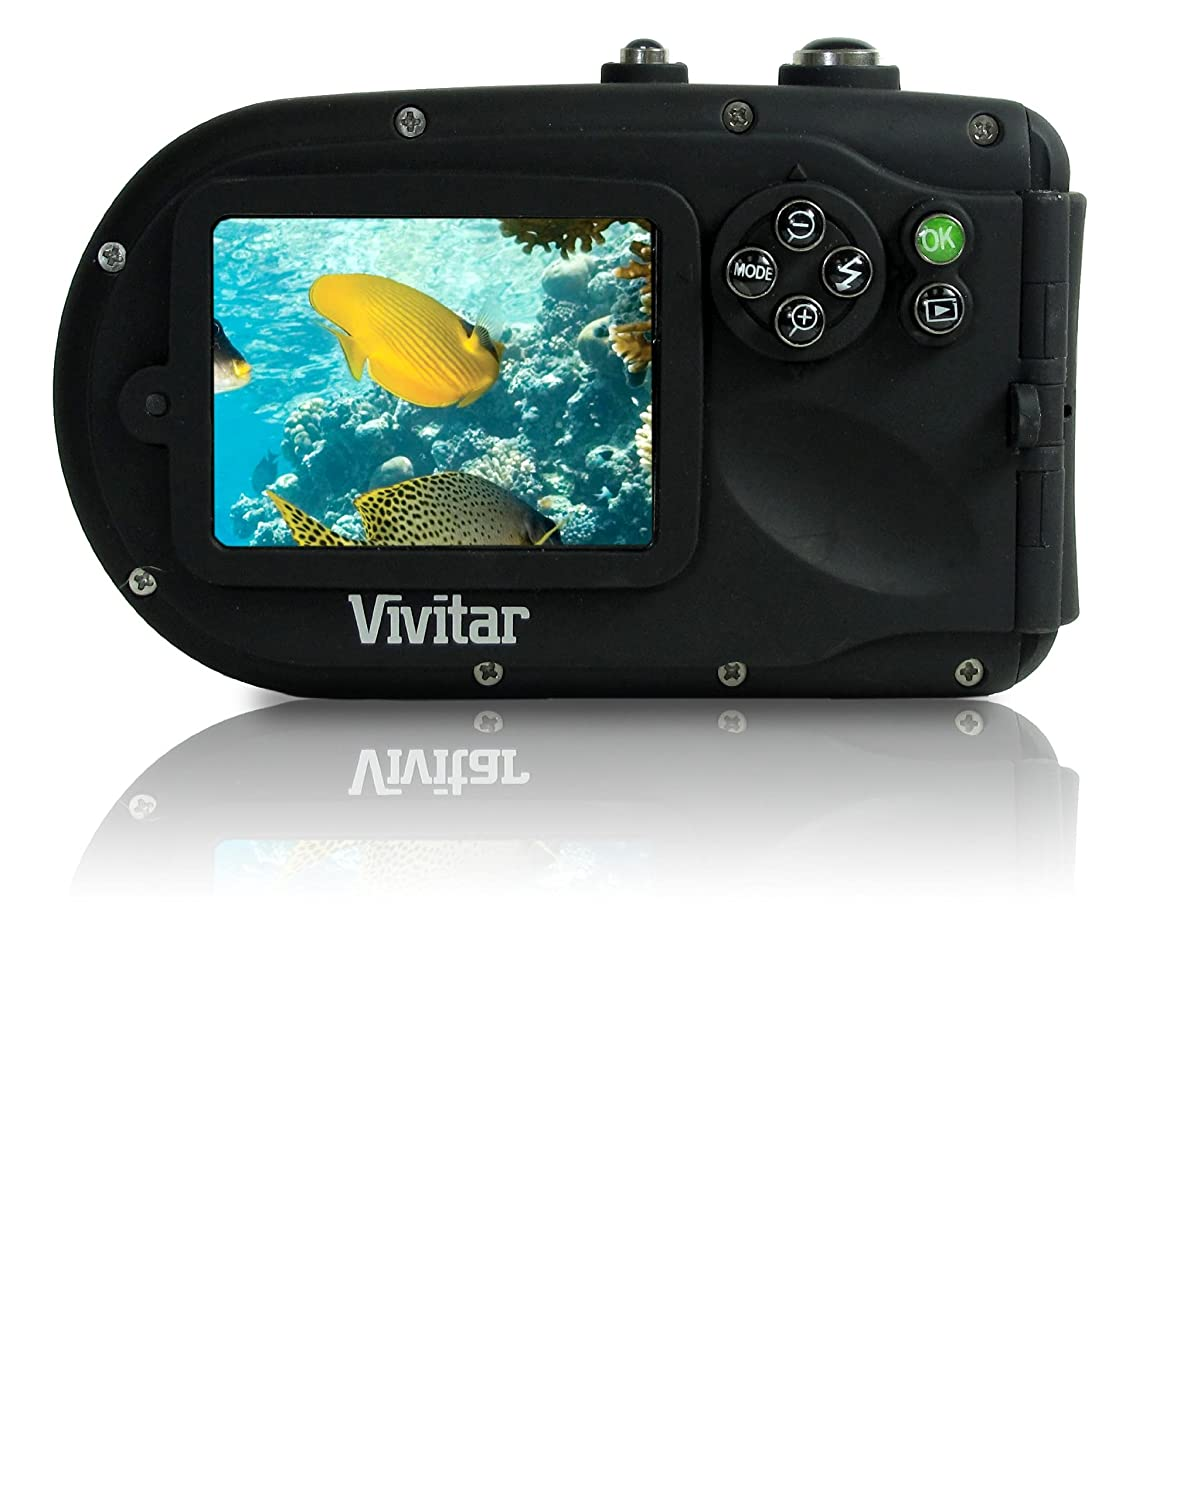 amazon com vivitar 8400yl vivicam 8 mp compact system camera with